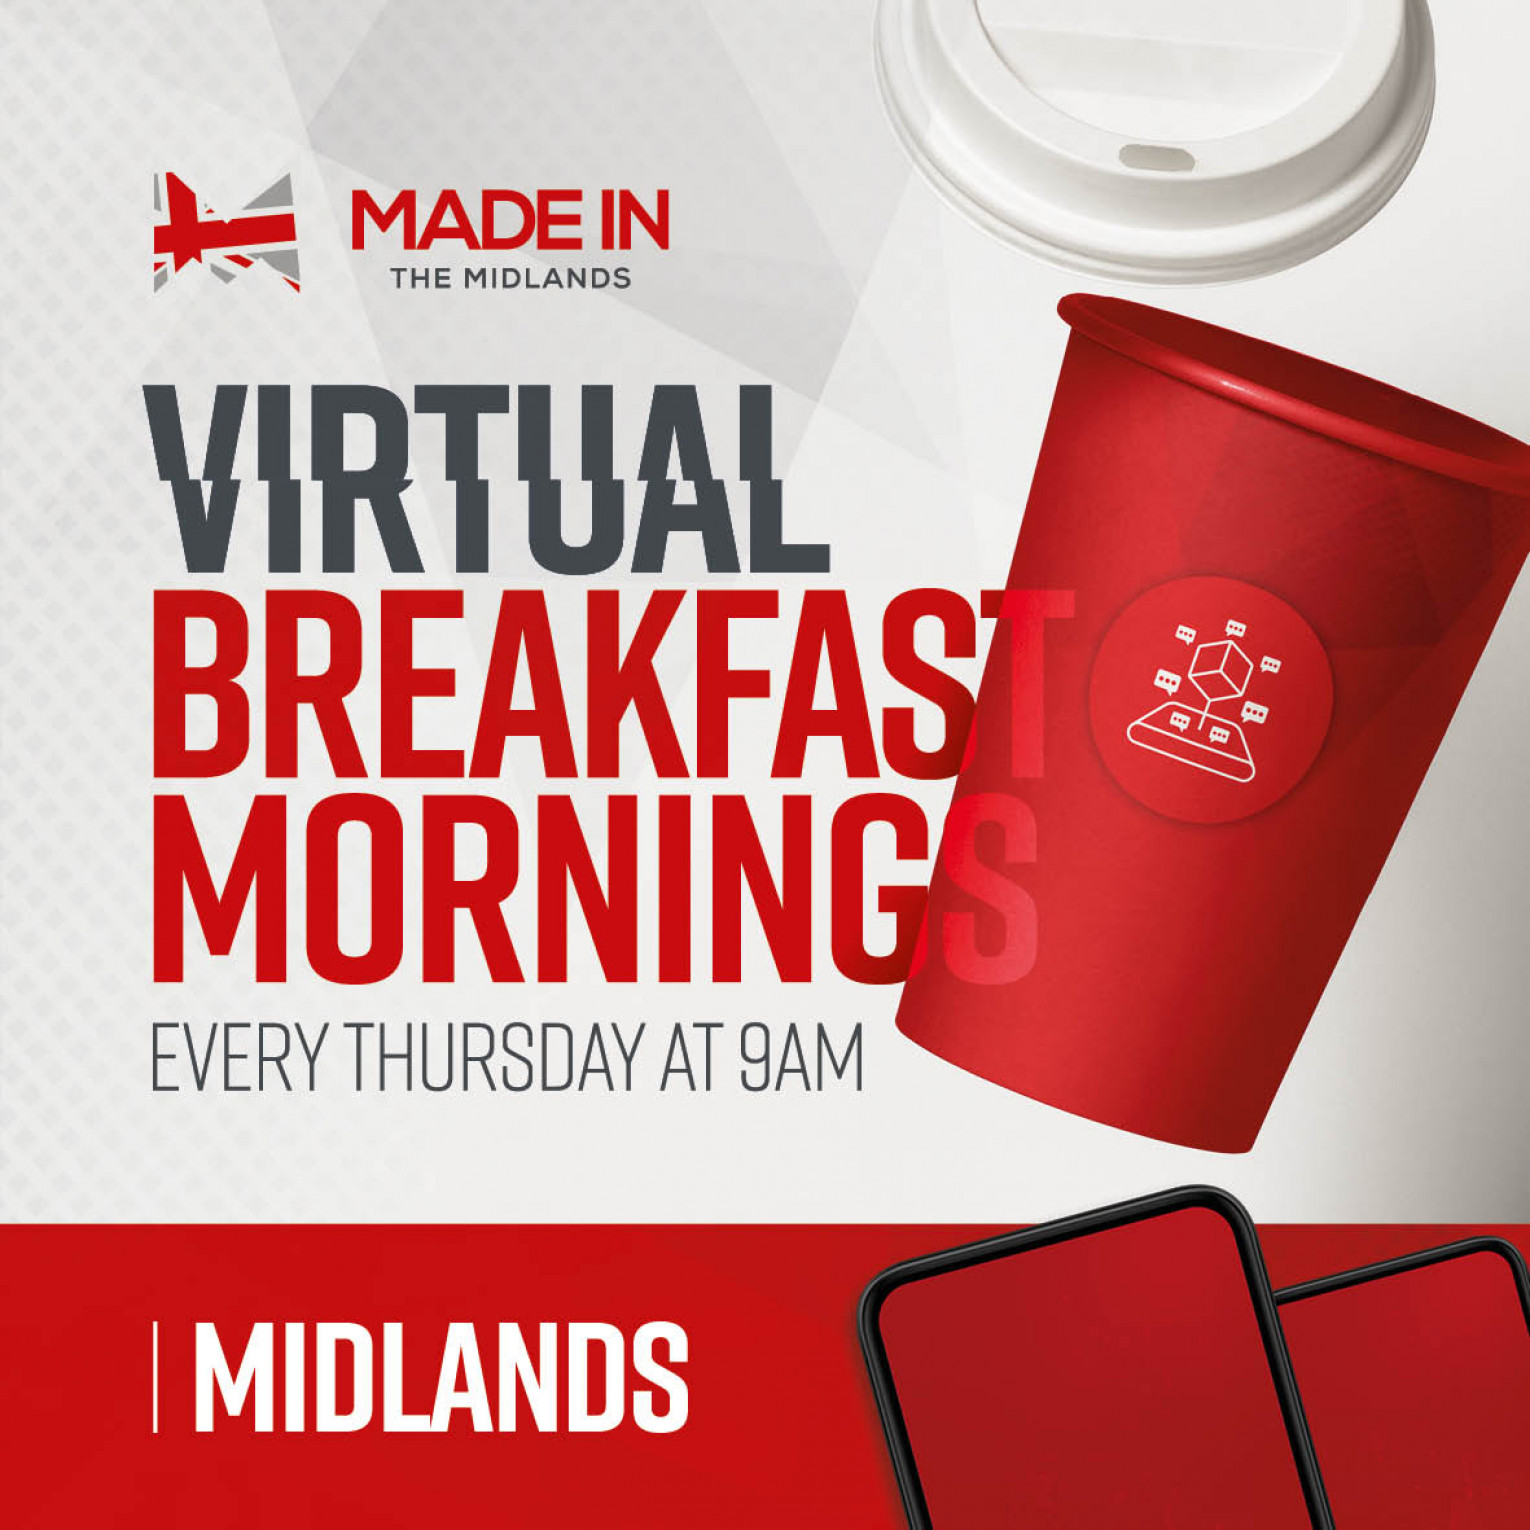 Made in the Midlands Virtual Breakfast Morning Networking event with Birmingham Prototypes